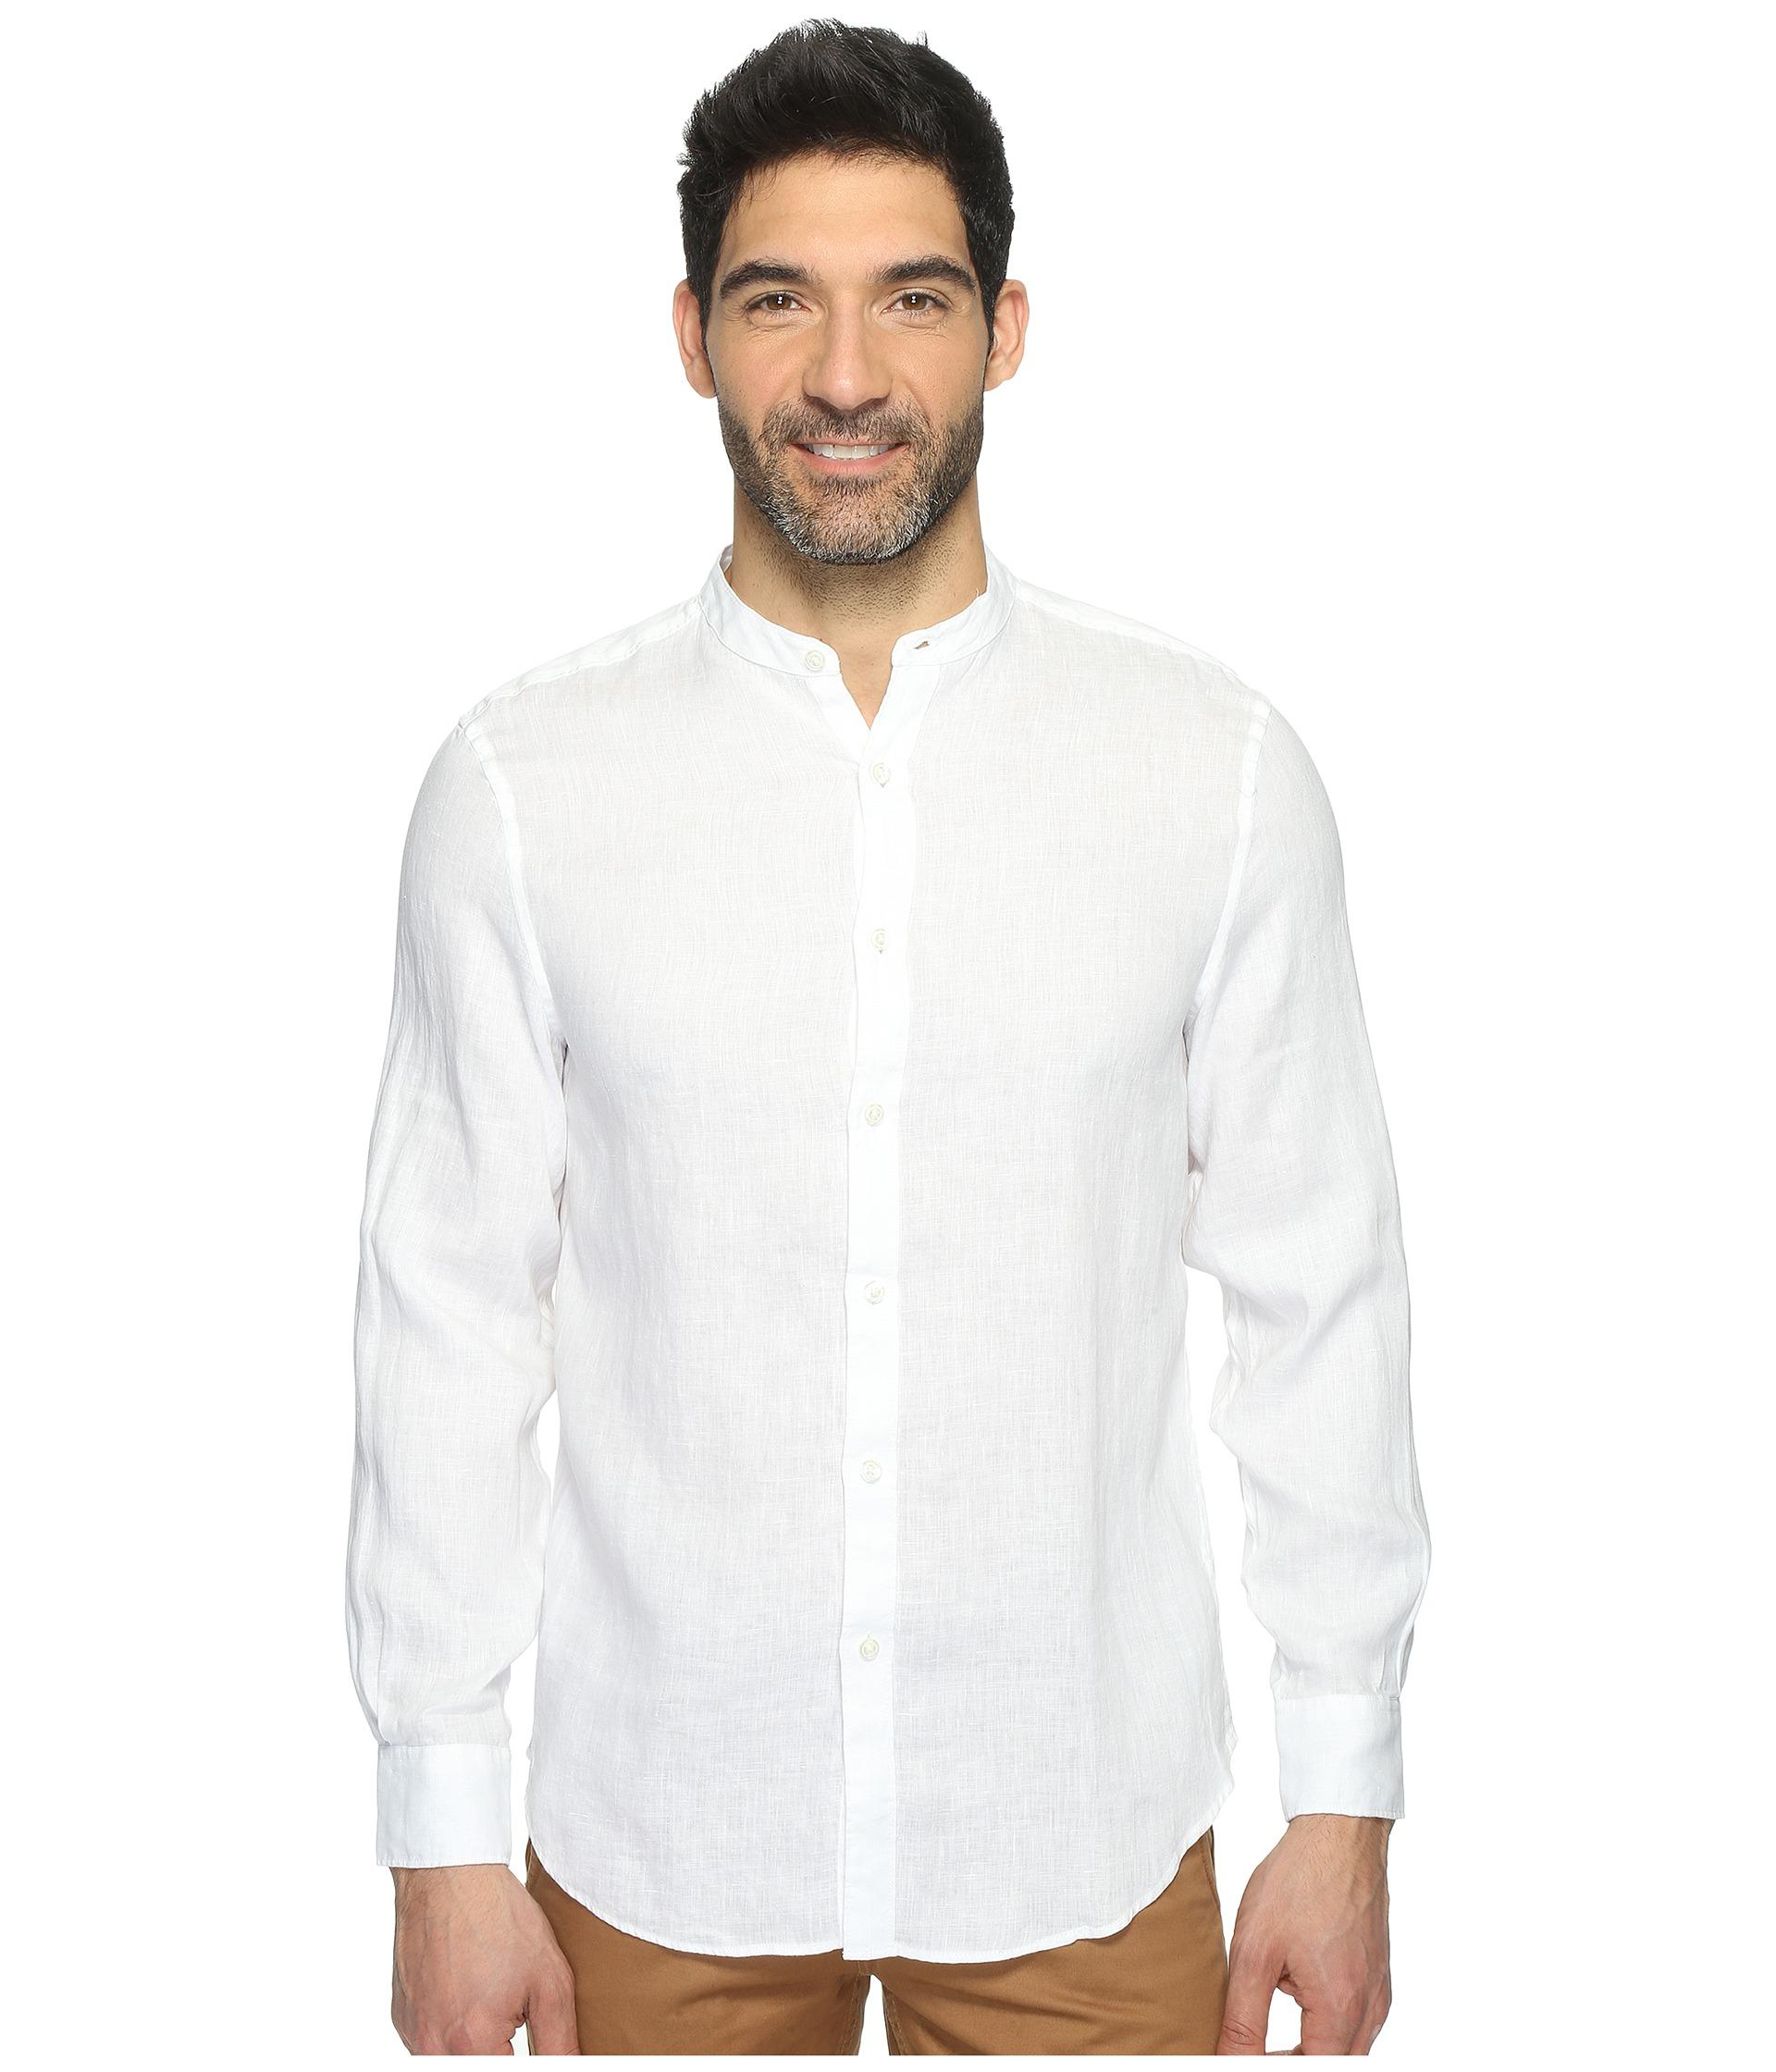 Perry Ellis Long Sleeve Solid Banded Collar Linen Shirt In